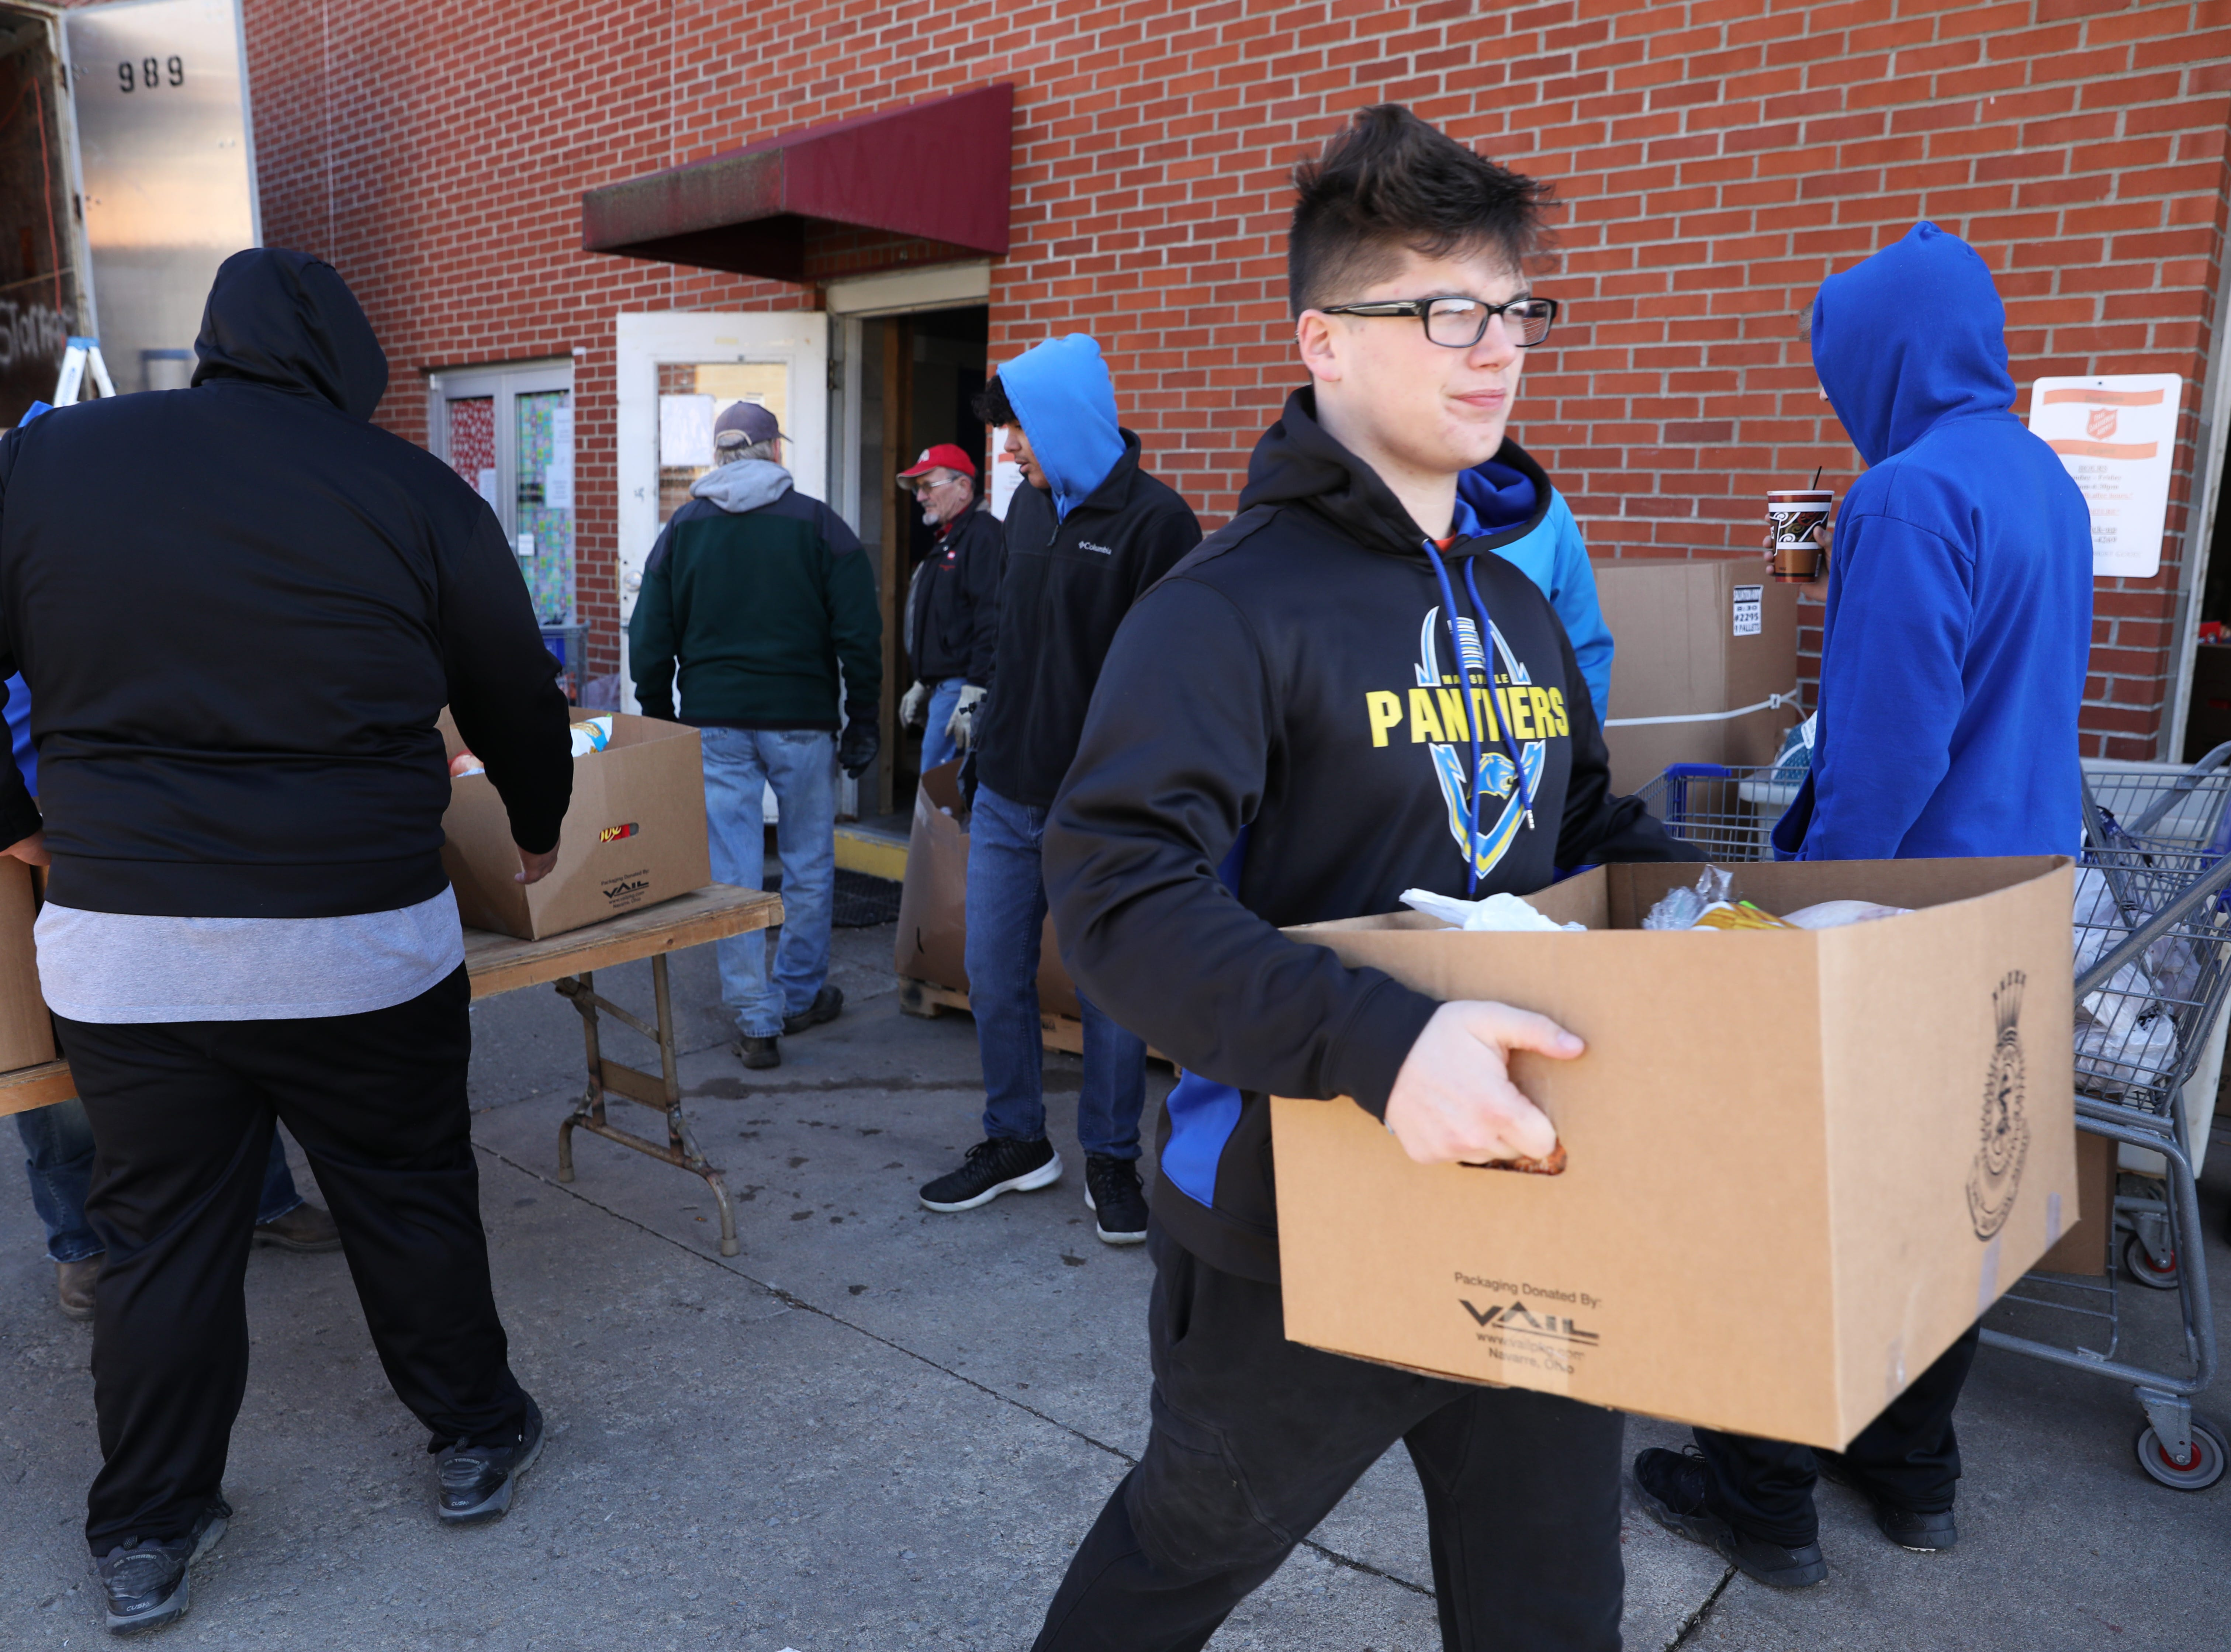 Maysville High School football player Easton Smith carries a box of food while volunteering at the Salvation Army on Tuesday.